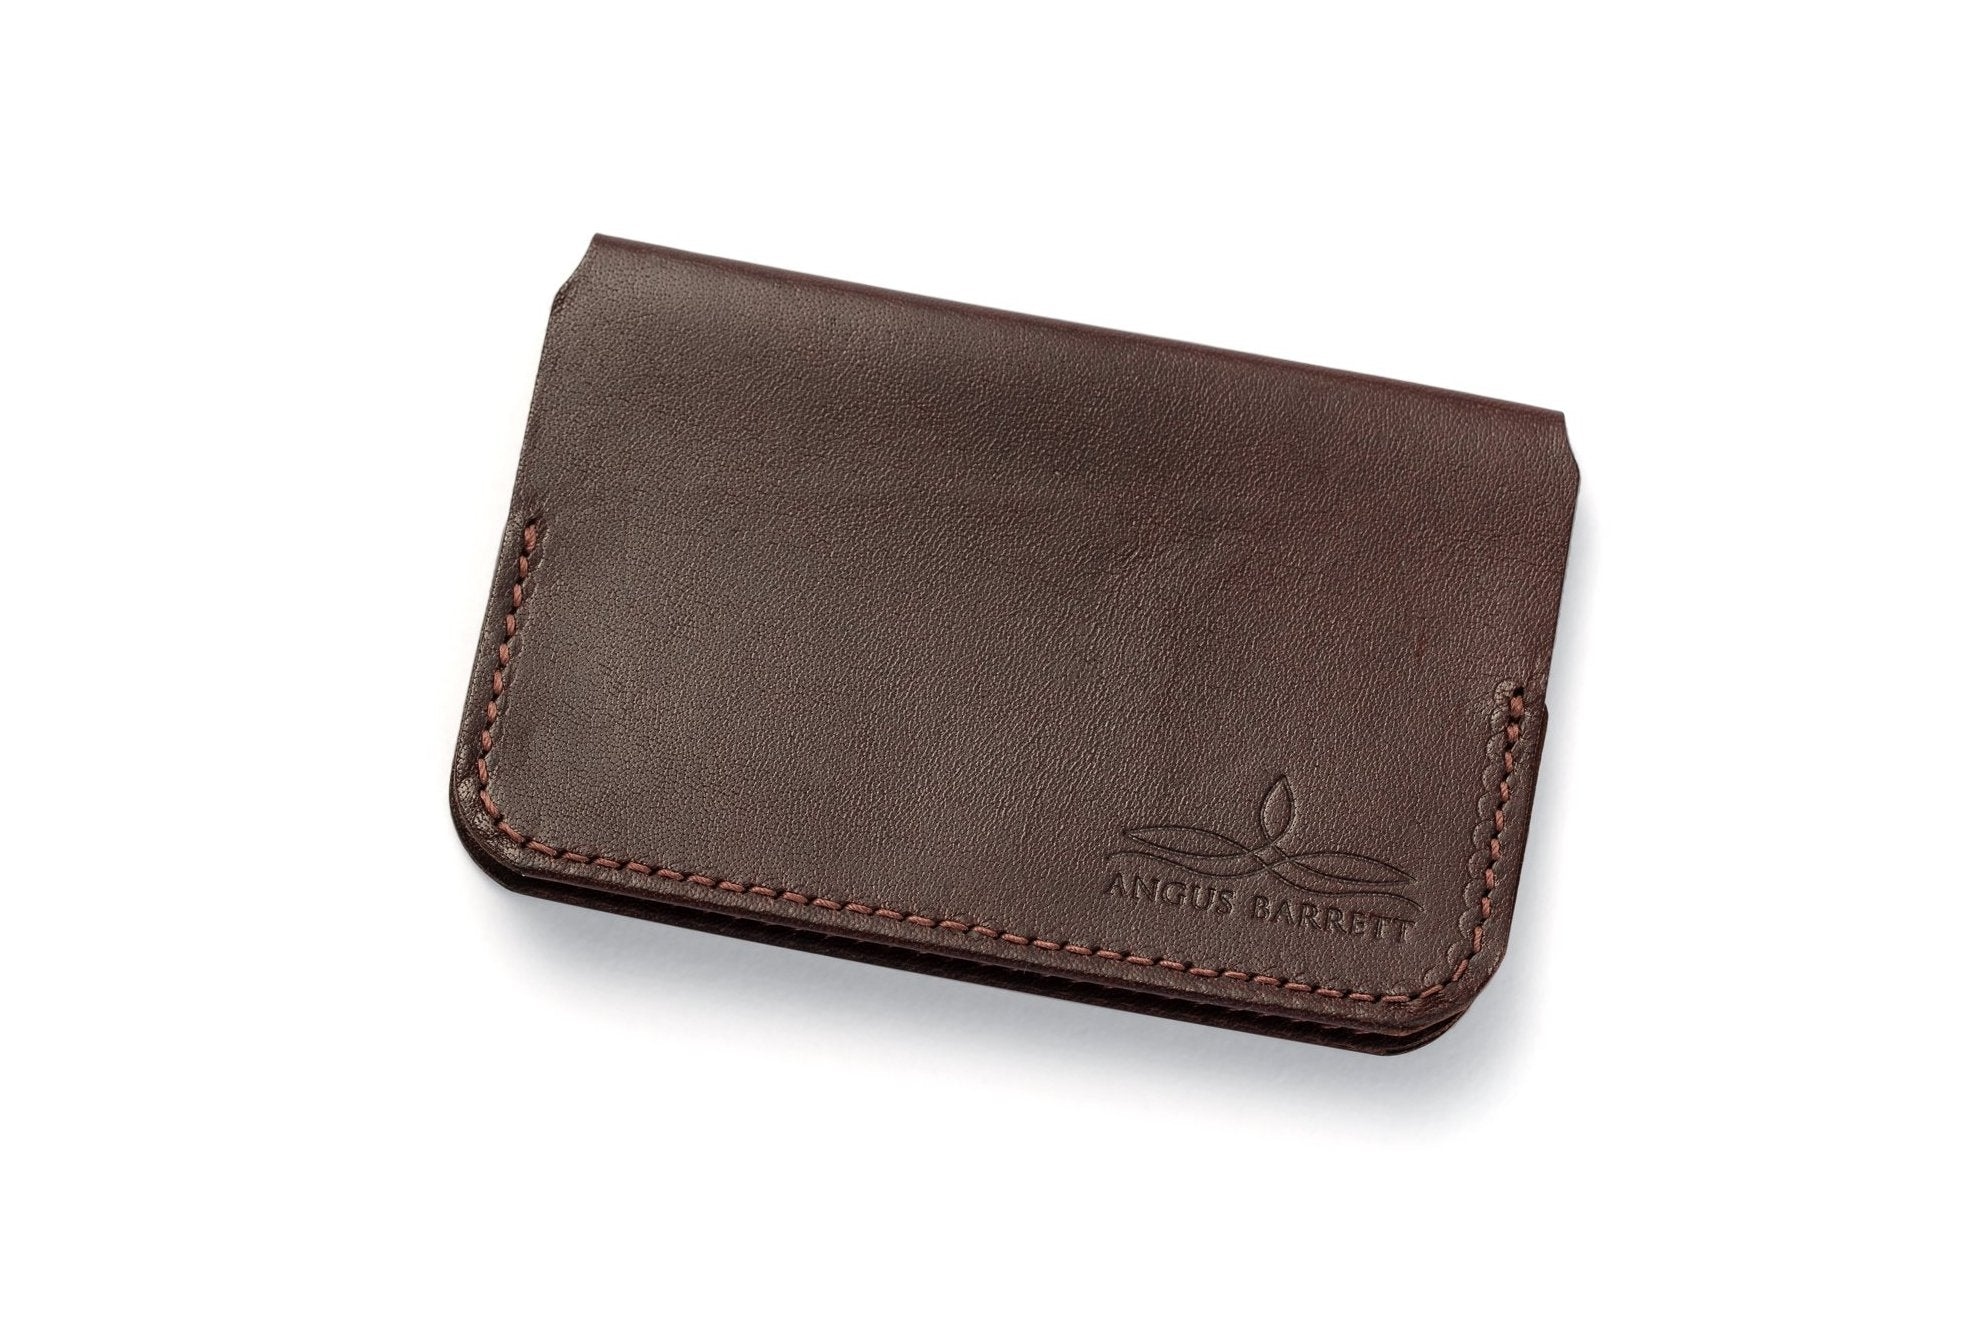 Little Yarra wallet or cardholder